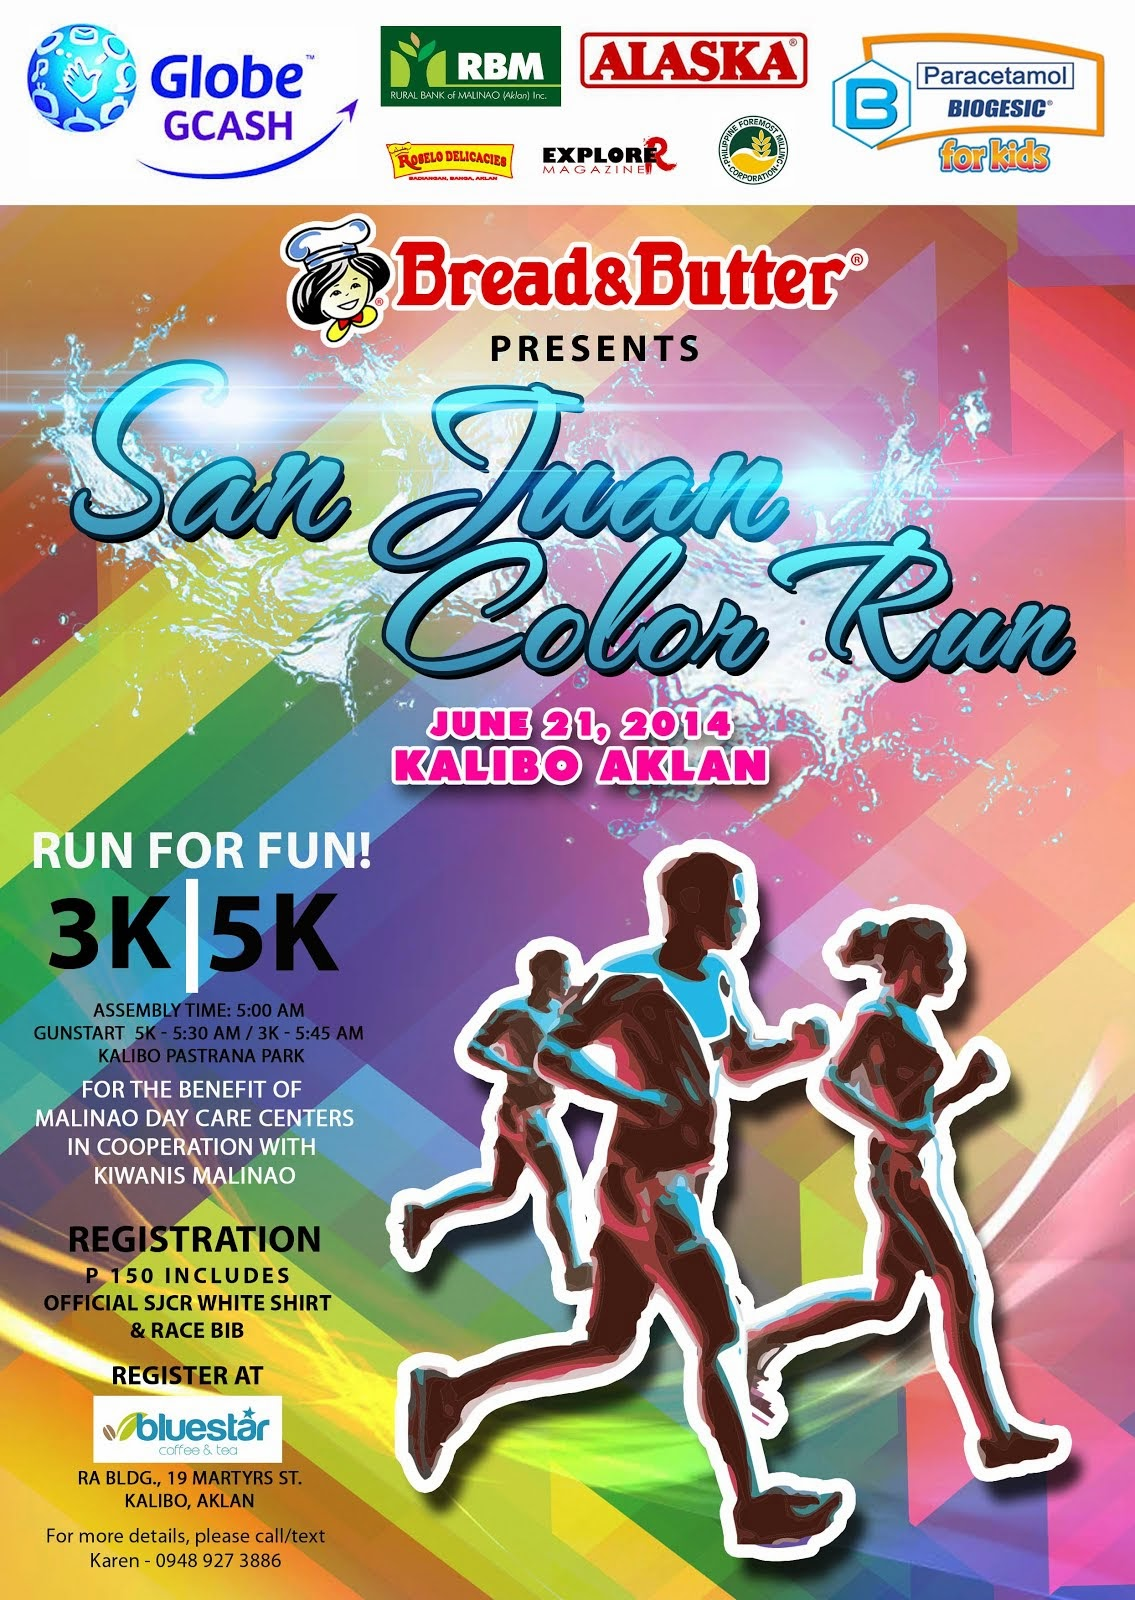 Bread & Butter host the 1st San Juan Color in Kalibo